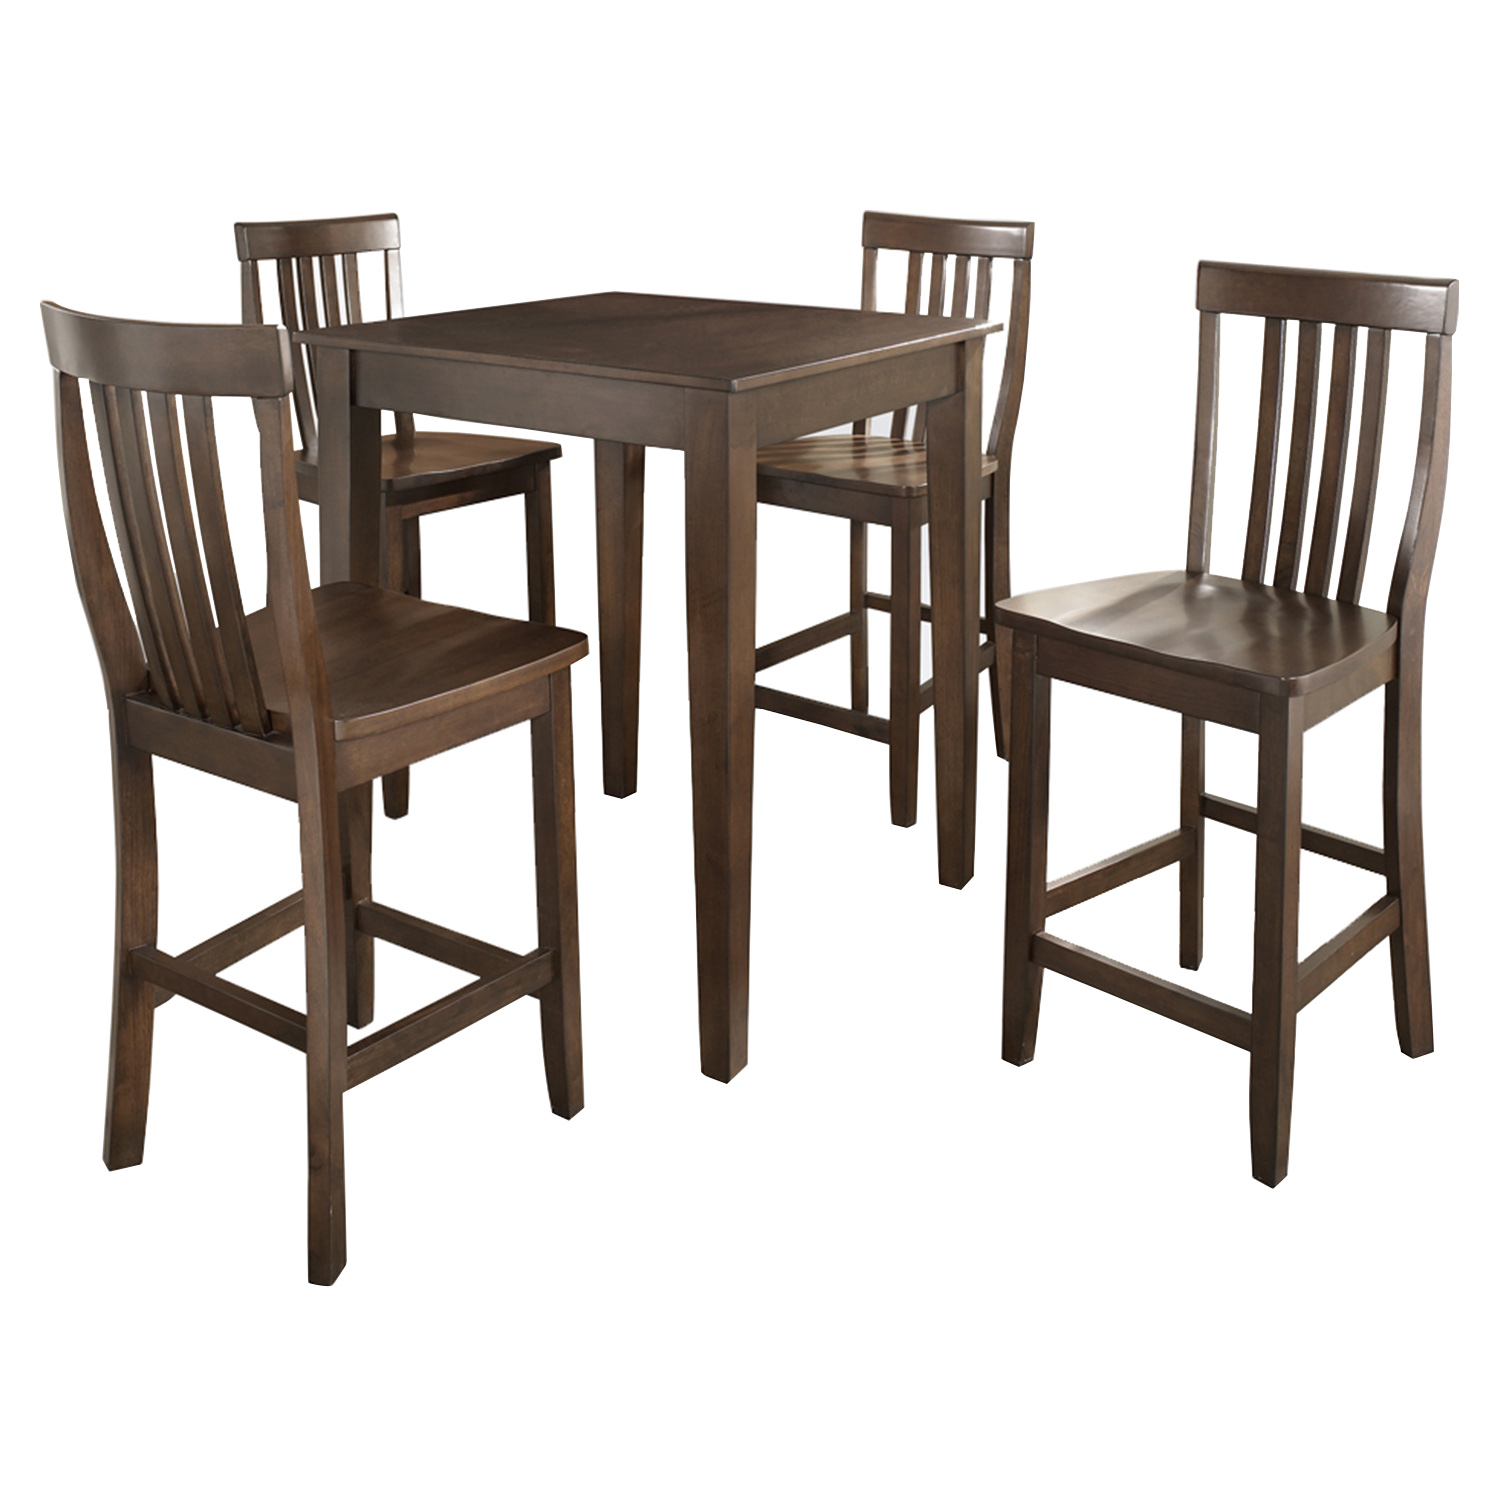 5-Piece Pub Dining Set - Tapered Table Legs, School House Stools, Mahogany - CROS-KD520007MA